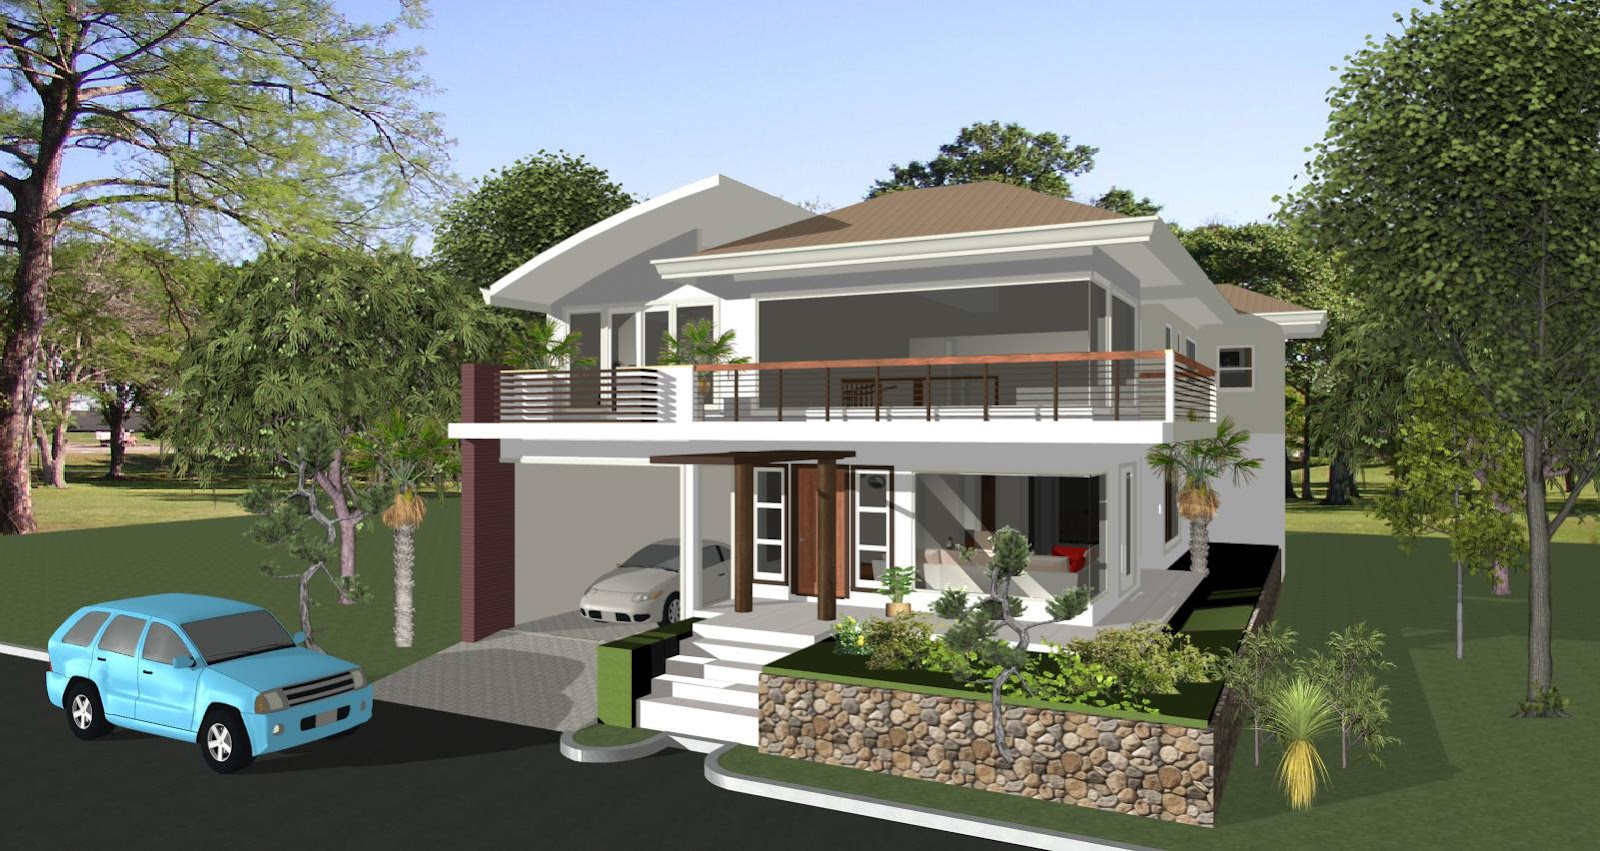 House designs philippines architect bill house plans for Different interior designs of houses